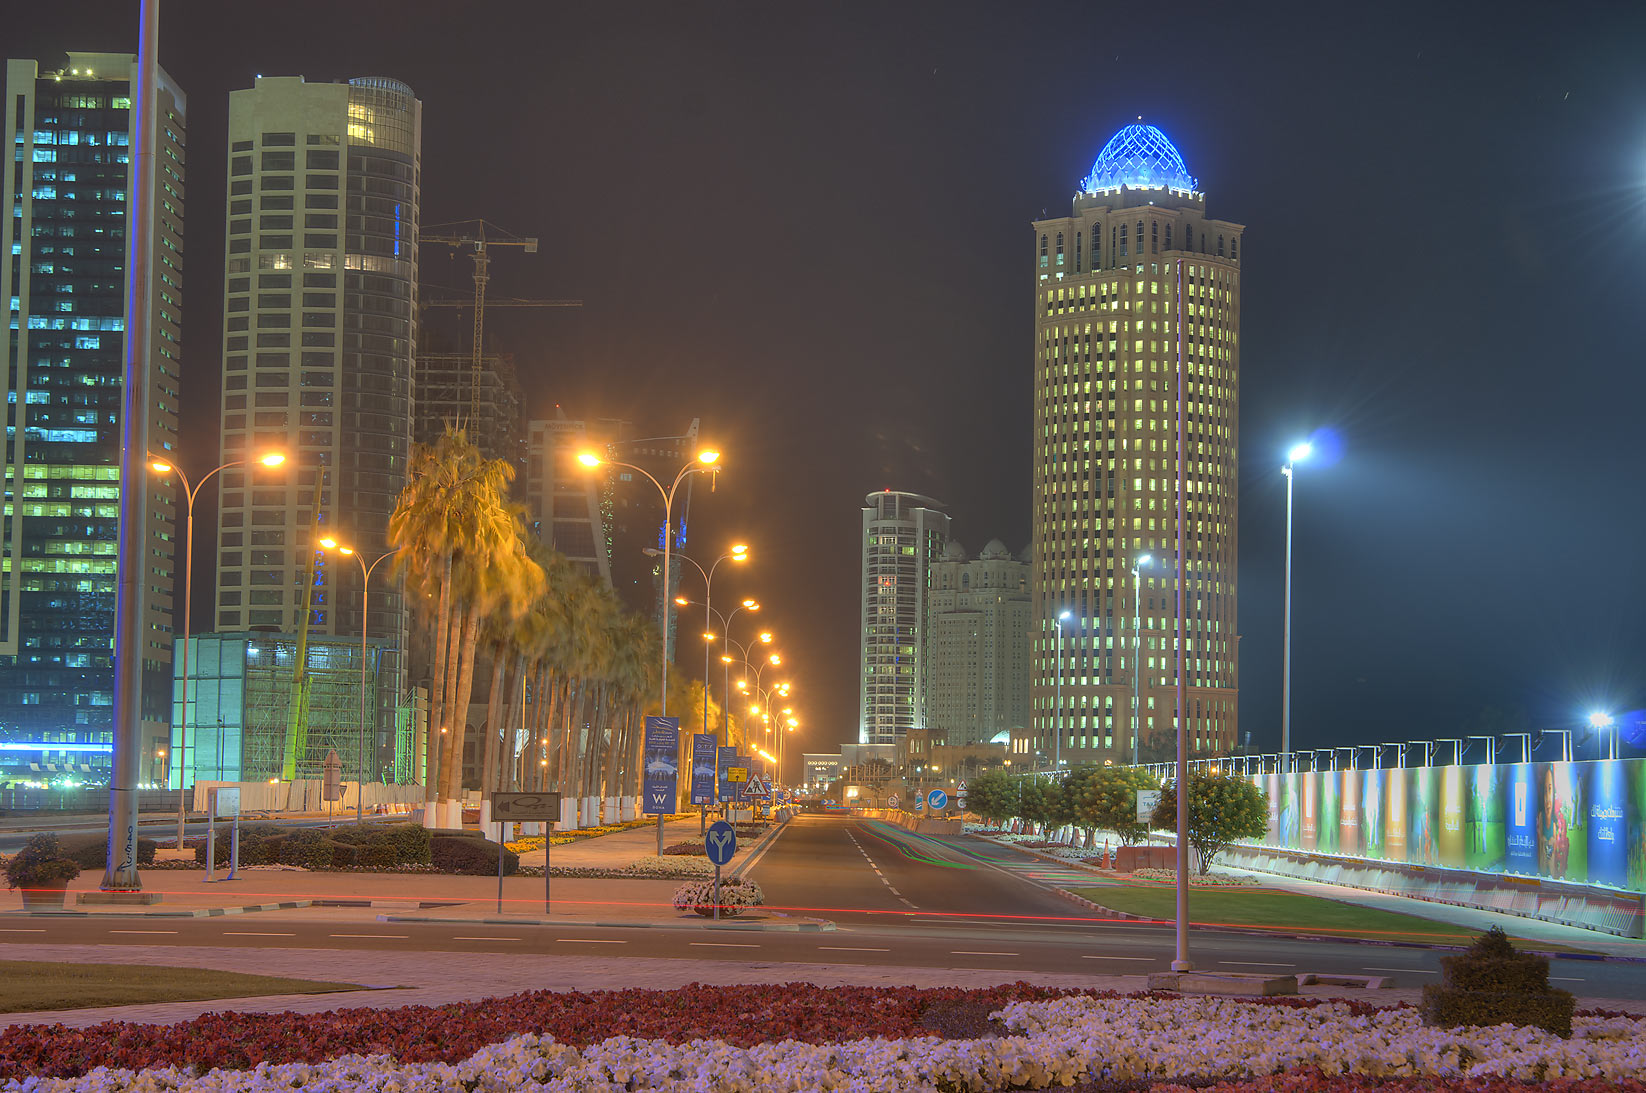 QTel Tower and Diplomatic St. in West Bay from Exhibition Roundabout. Doha, Qatar